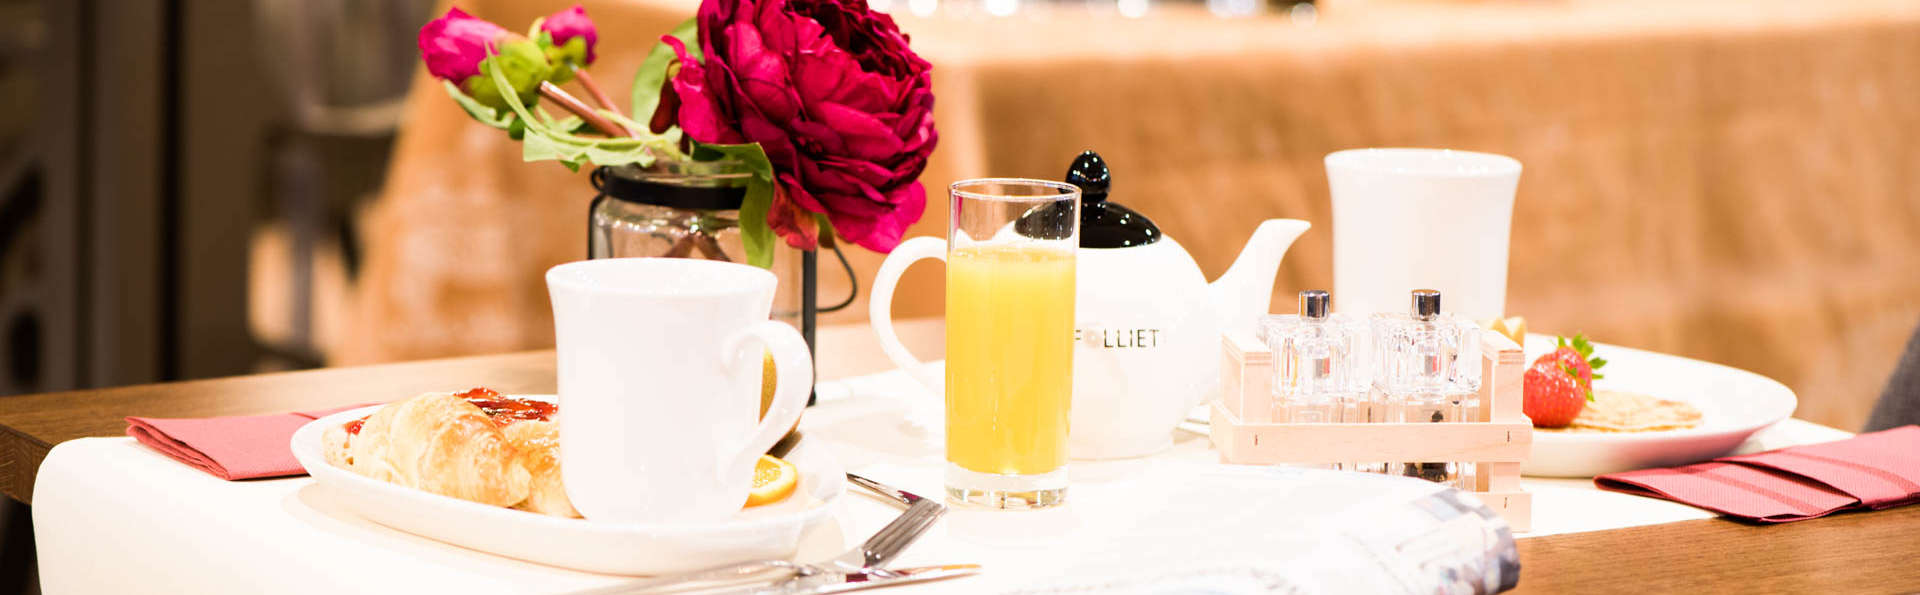 Le Lodge Hotel Brit Strasbourg - EDIT_NEW_BREAKFAST.jpg